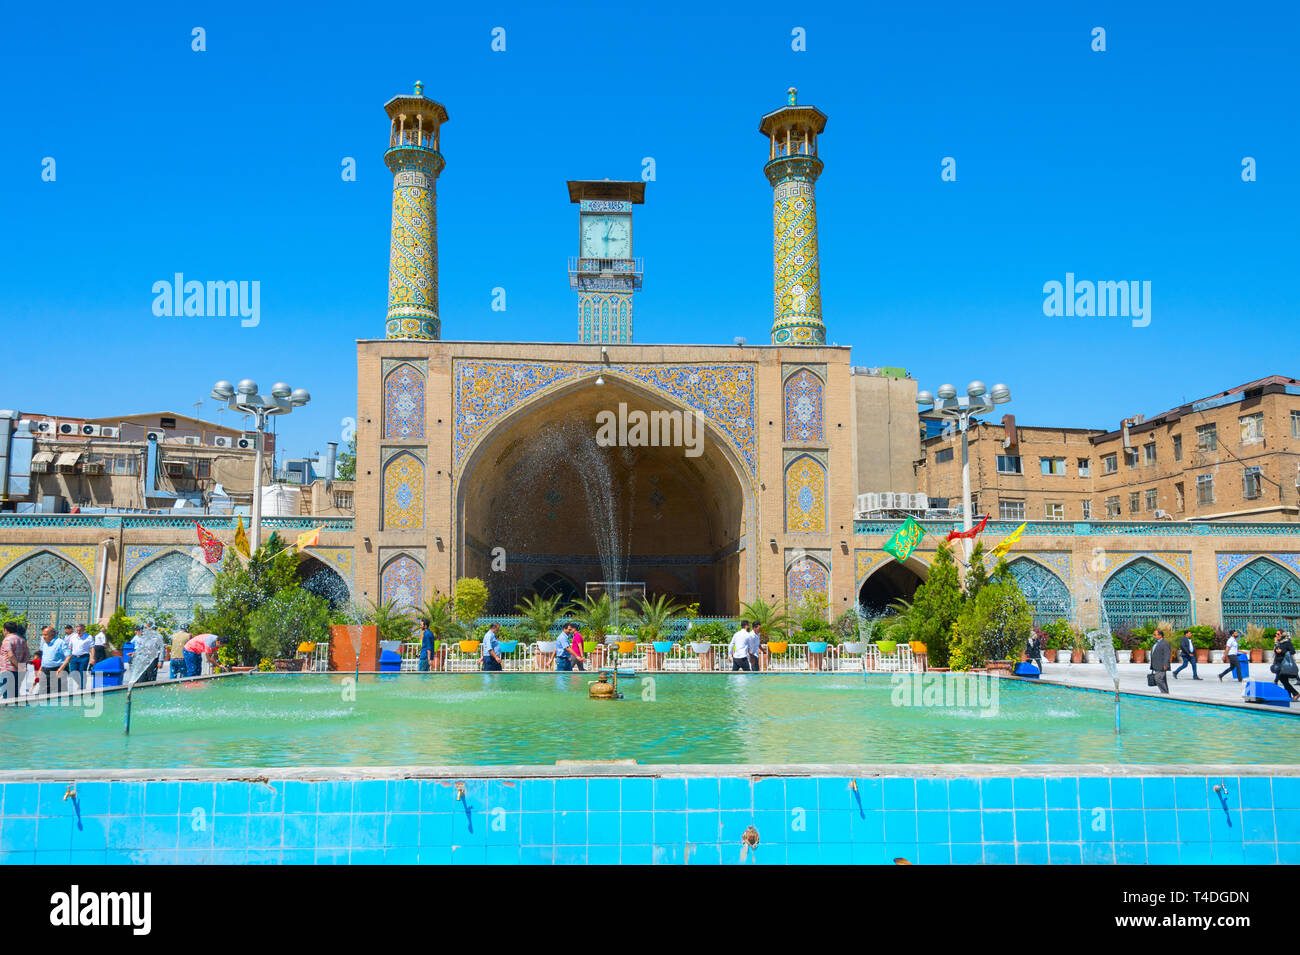 TEHRAN, IRAN - MAY 22, 2017: The Shah Mosque, also known as the Imam Khomeini Mosque is a mosque in the Grand Bazaar in Tehran, Iran. - Stock Image